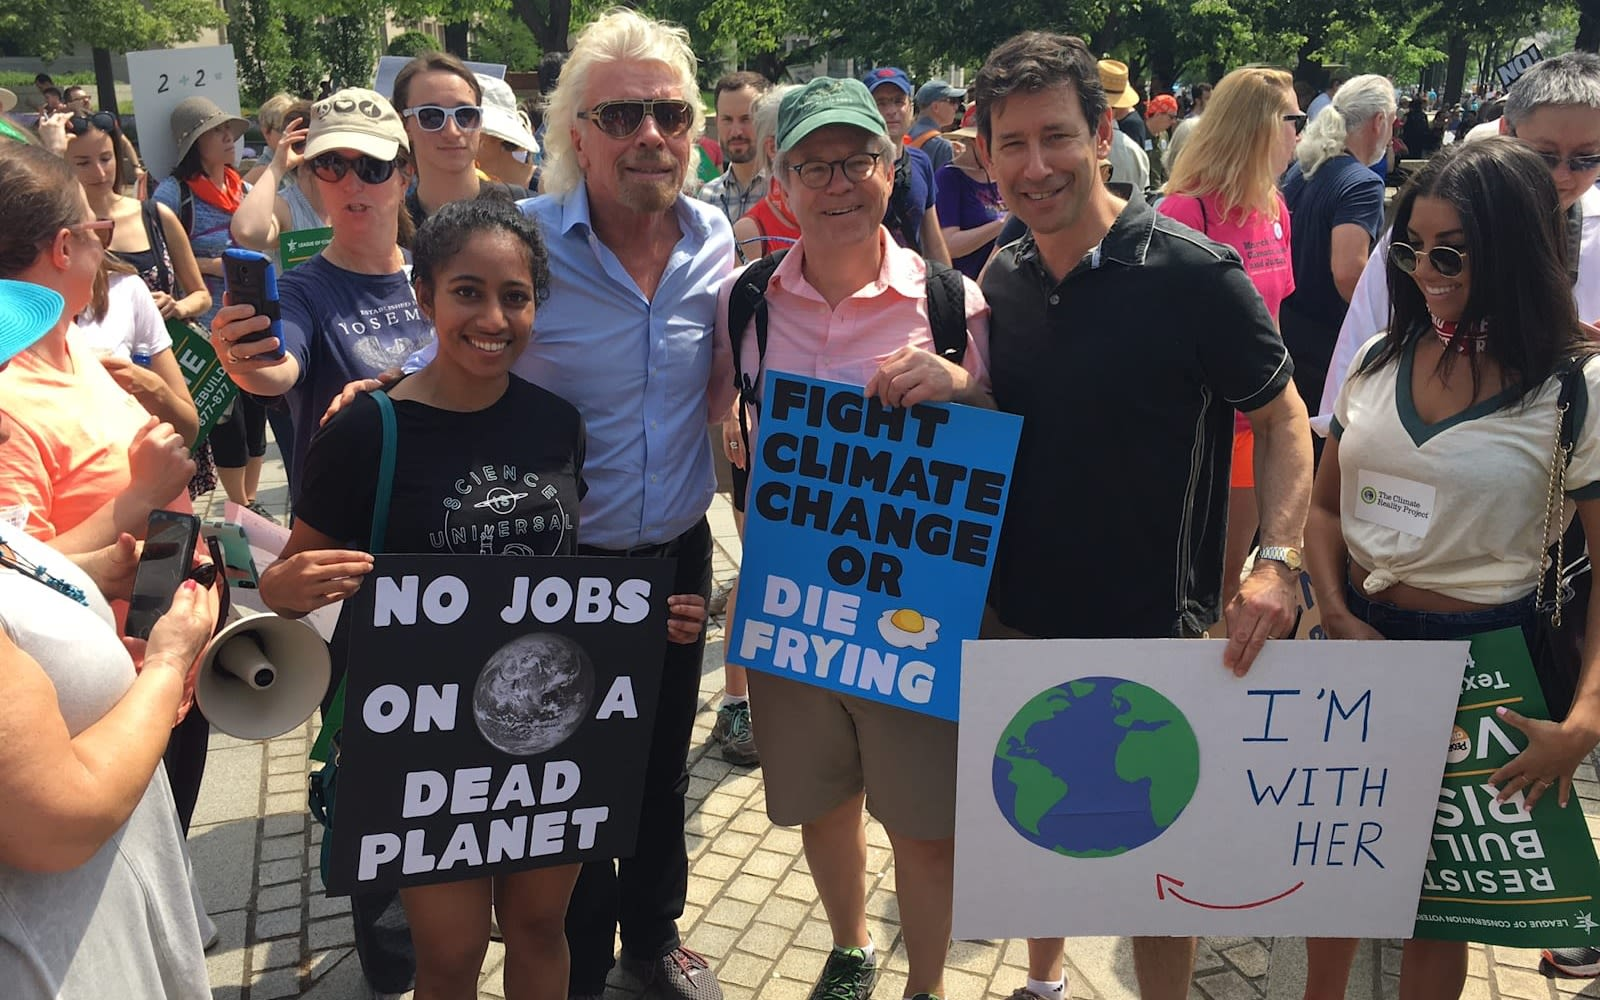 Richard Branson at the climate march in Washington, DC with other marchers